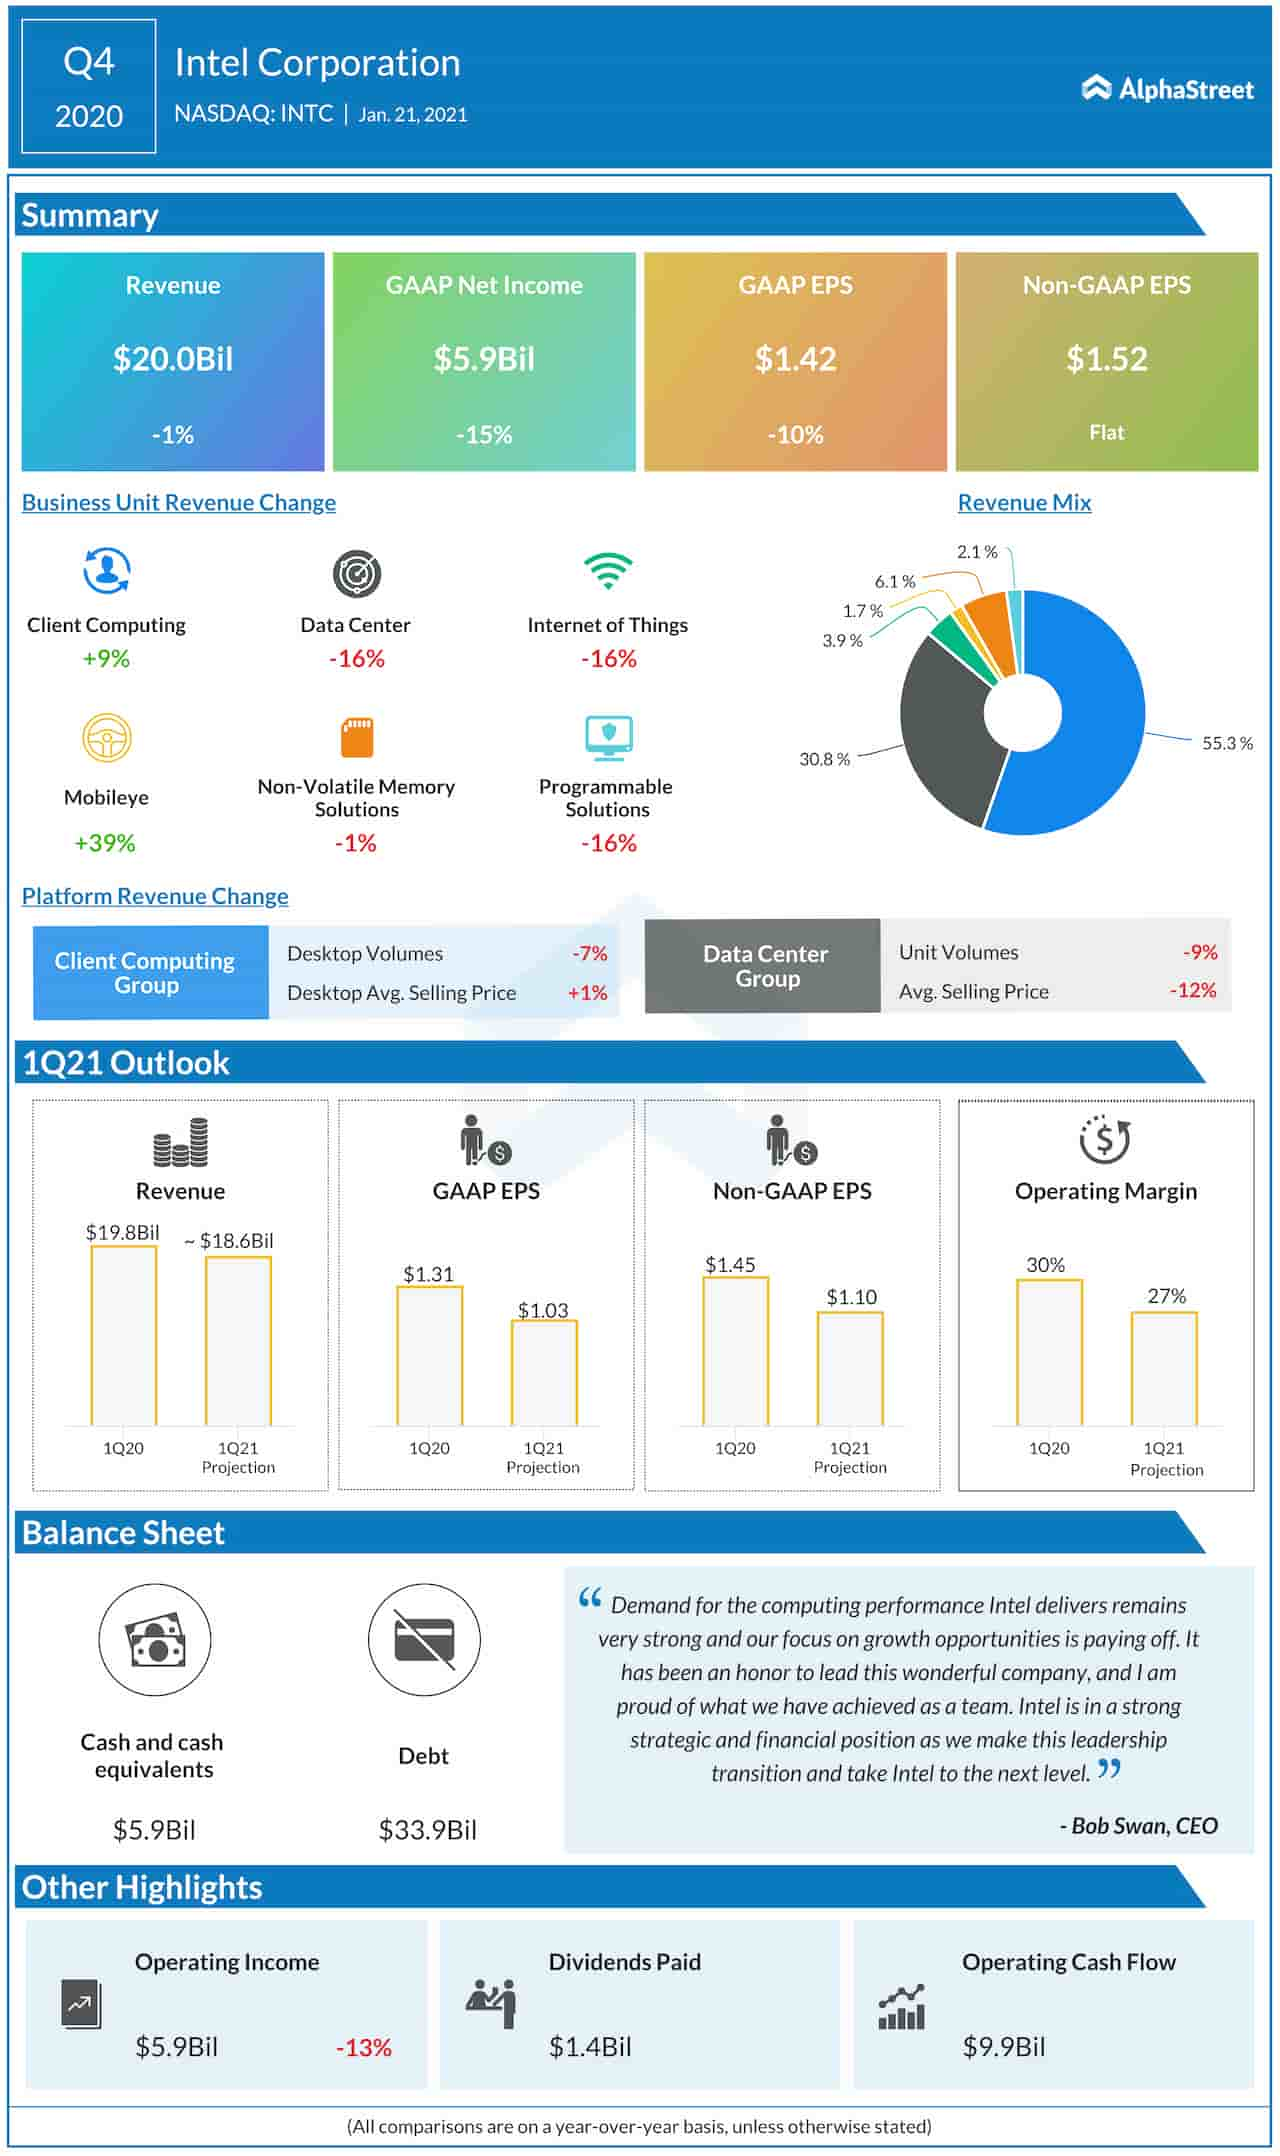 Intel Q4 2020 earnings infographic